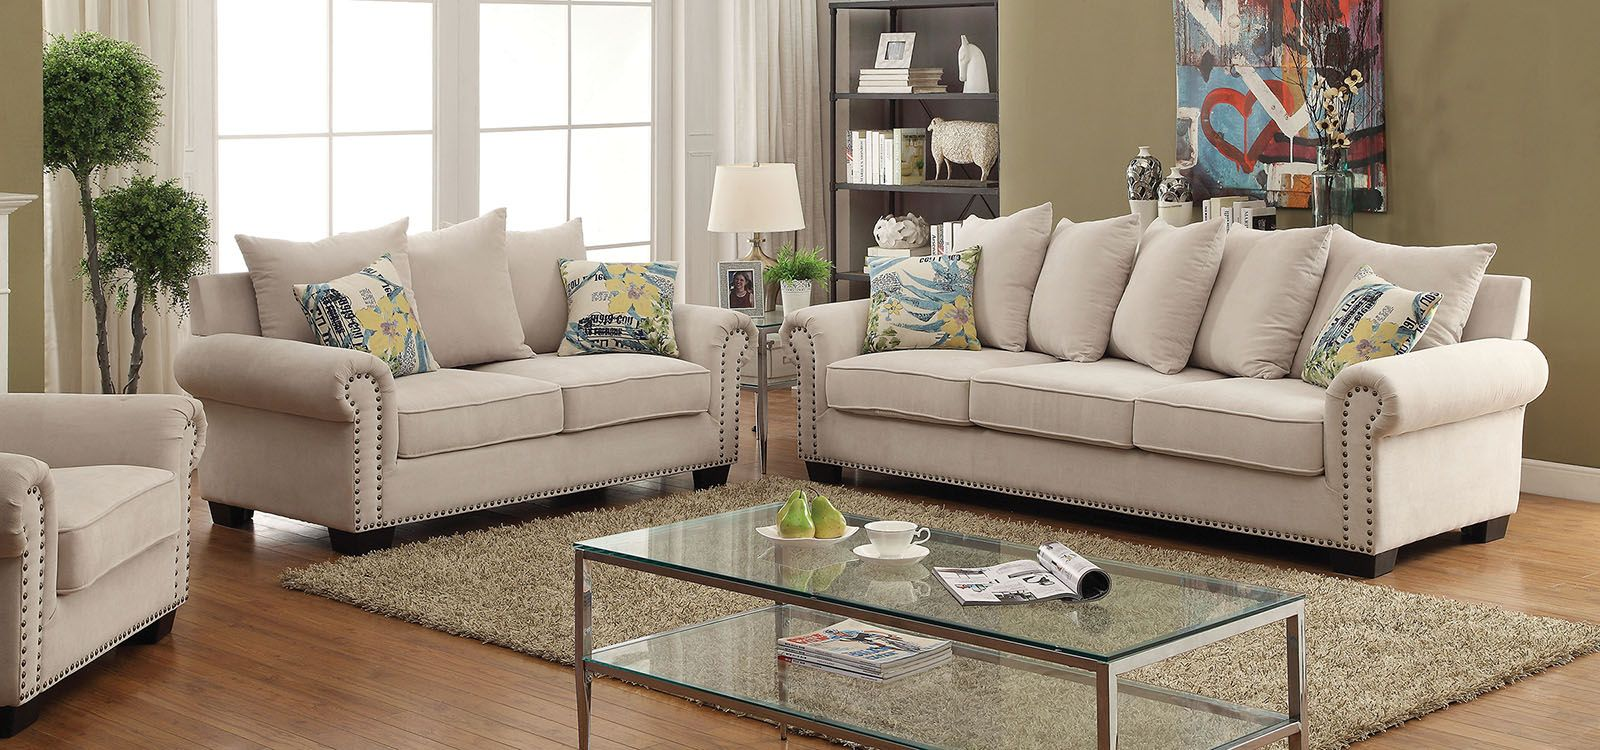 Furniture Of America Skyler Ivory Living Room Set